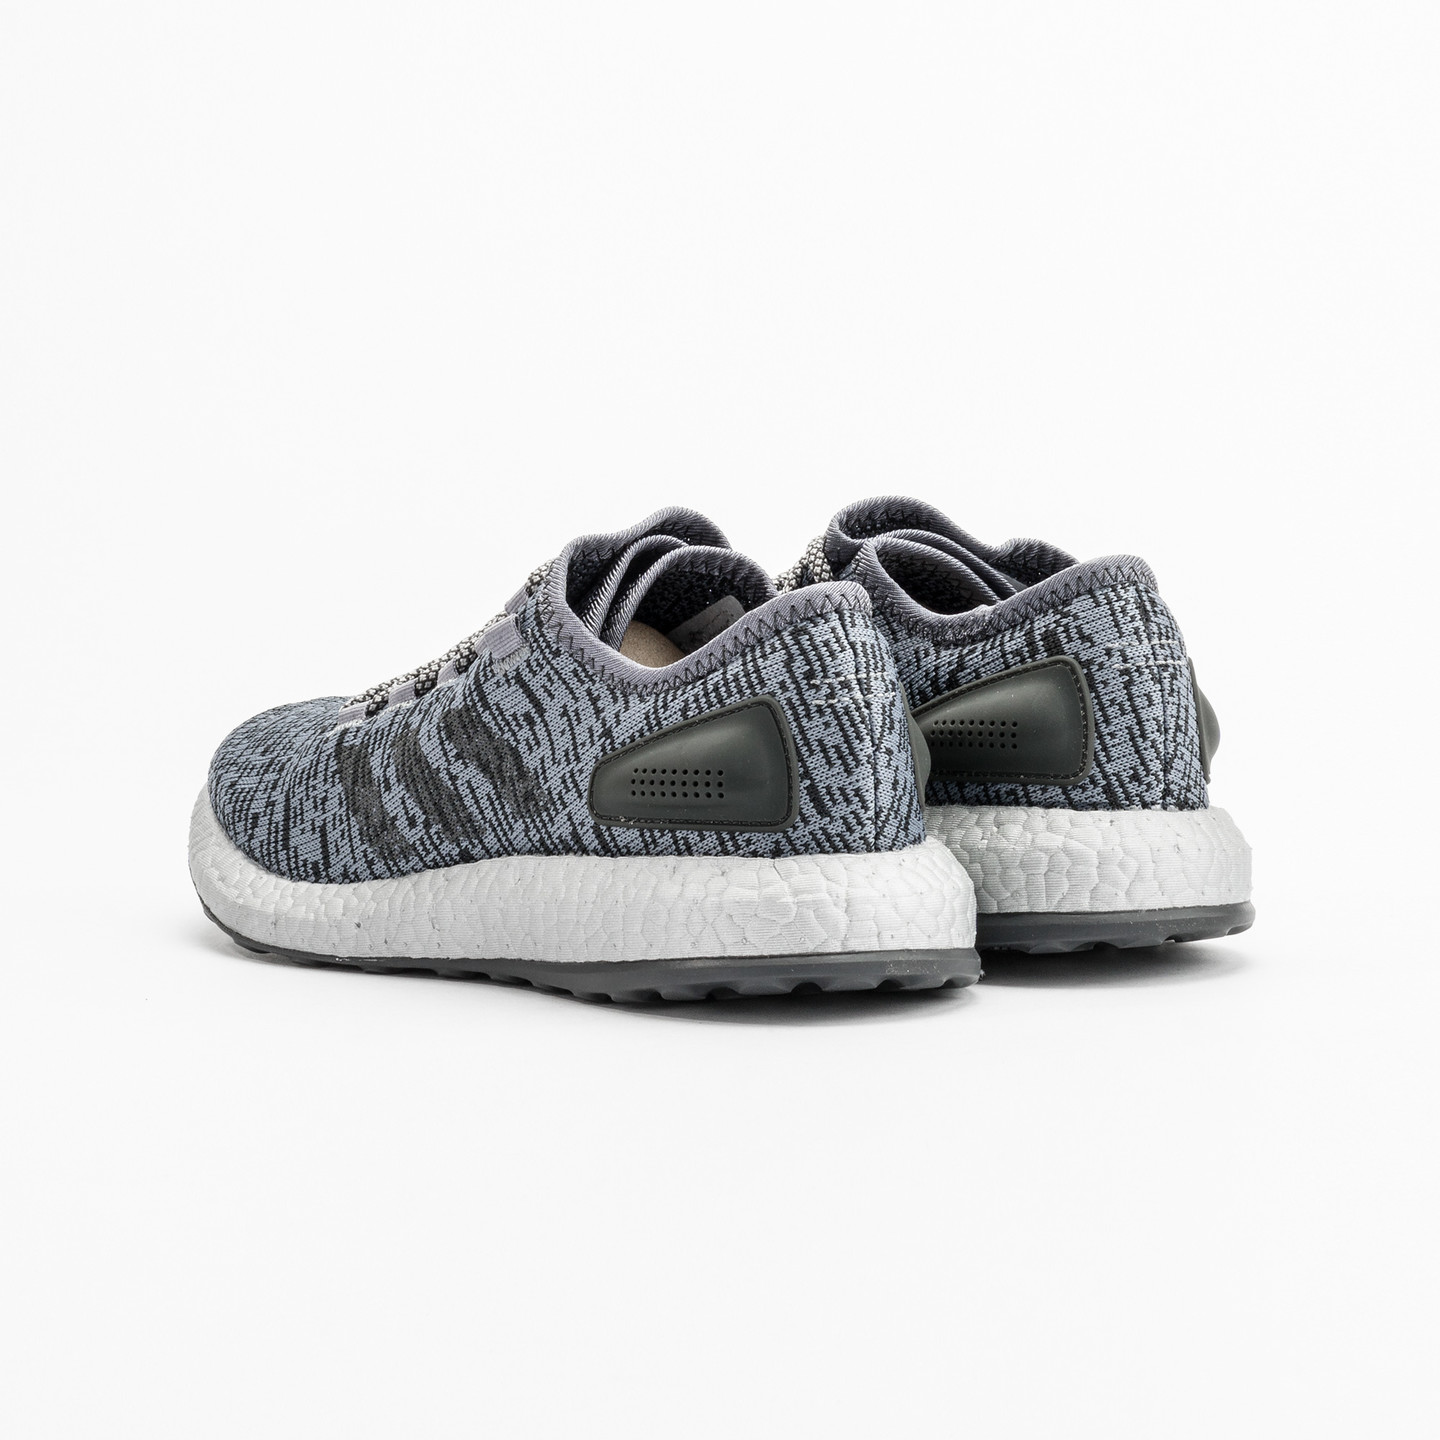 Adidas Pure Boost LTD Silver / Grey S80703